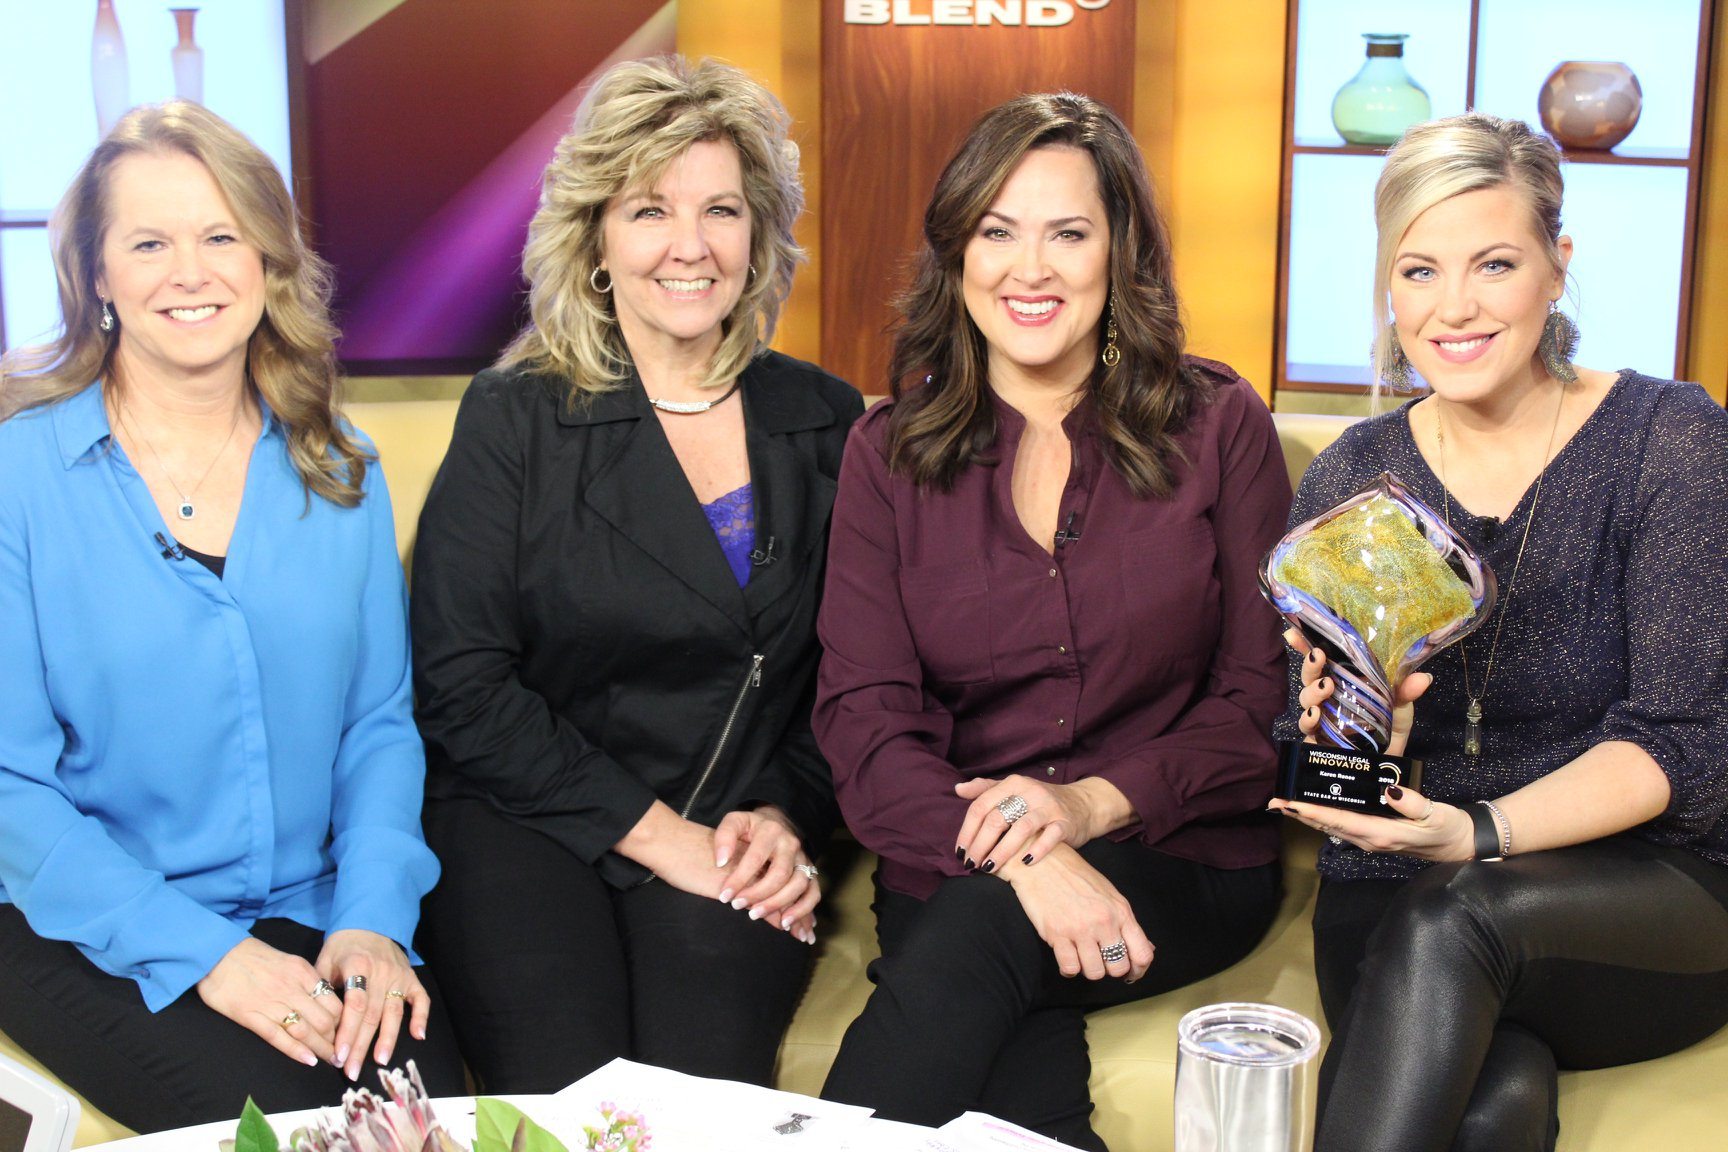 The Morning Blend Features eCourt Reporters' Award - eCourt